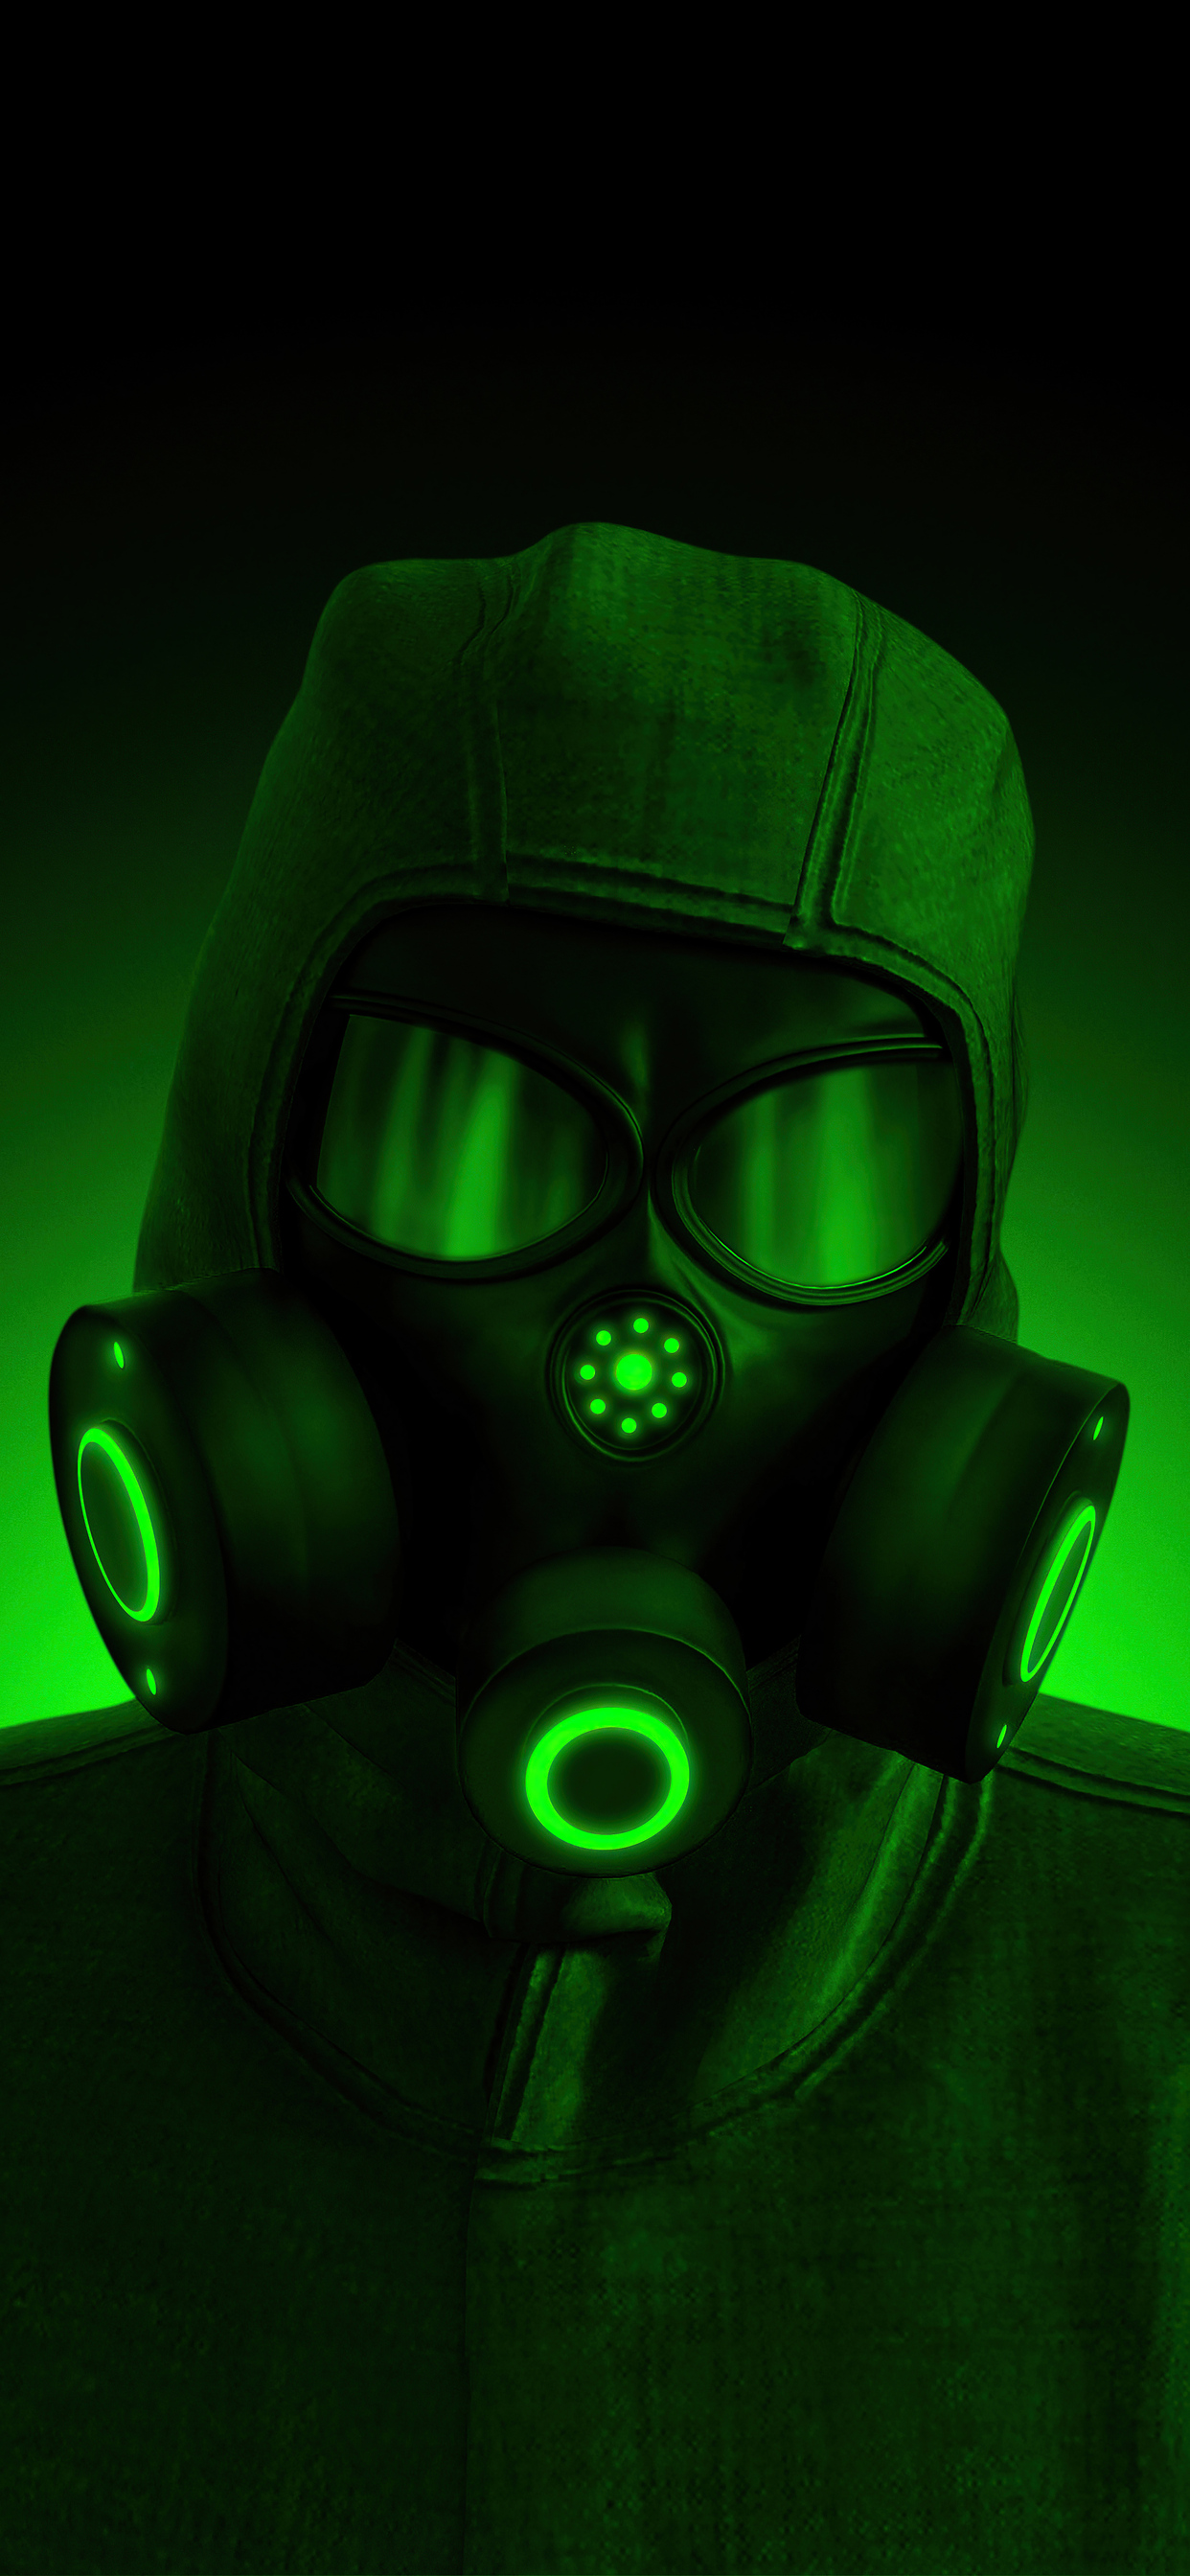 hazardous-mask-green-5k-3h.jpg